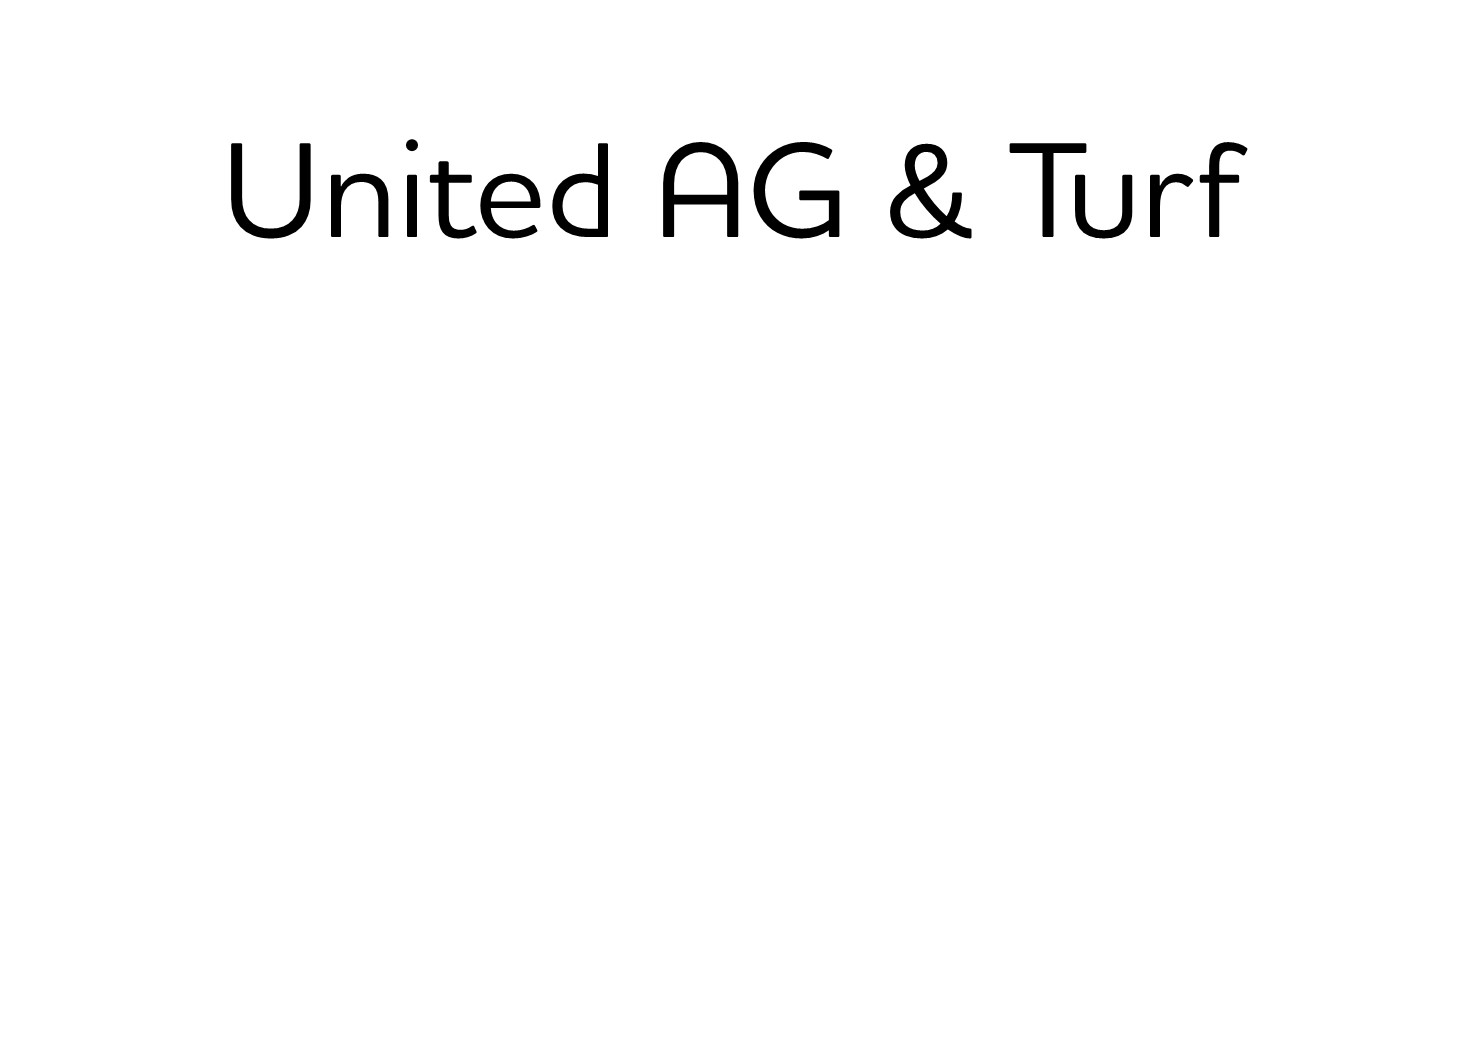 500. United AG & Turf (Bronze)